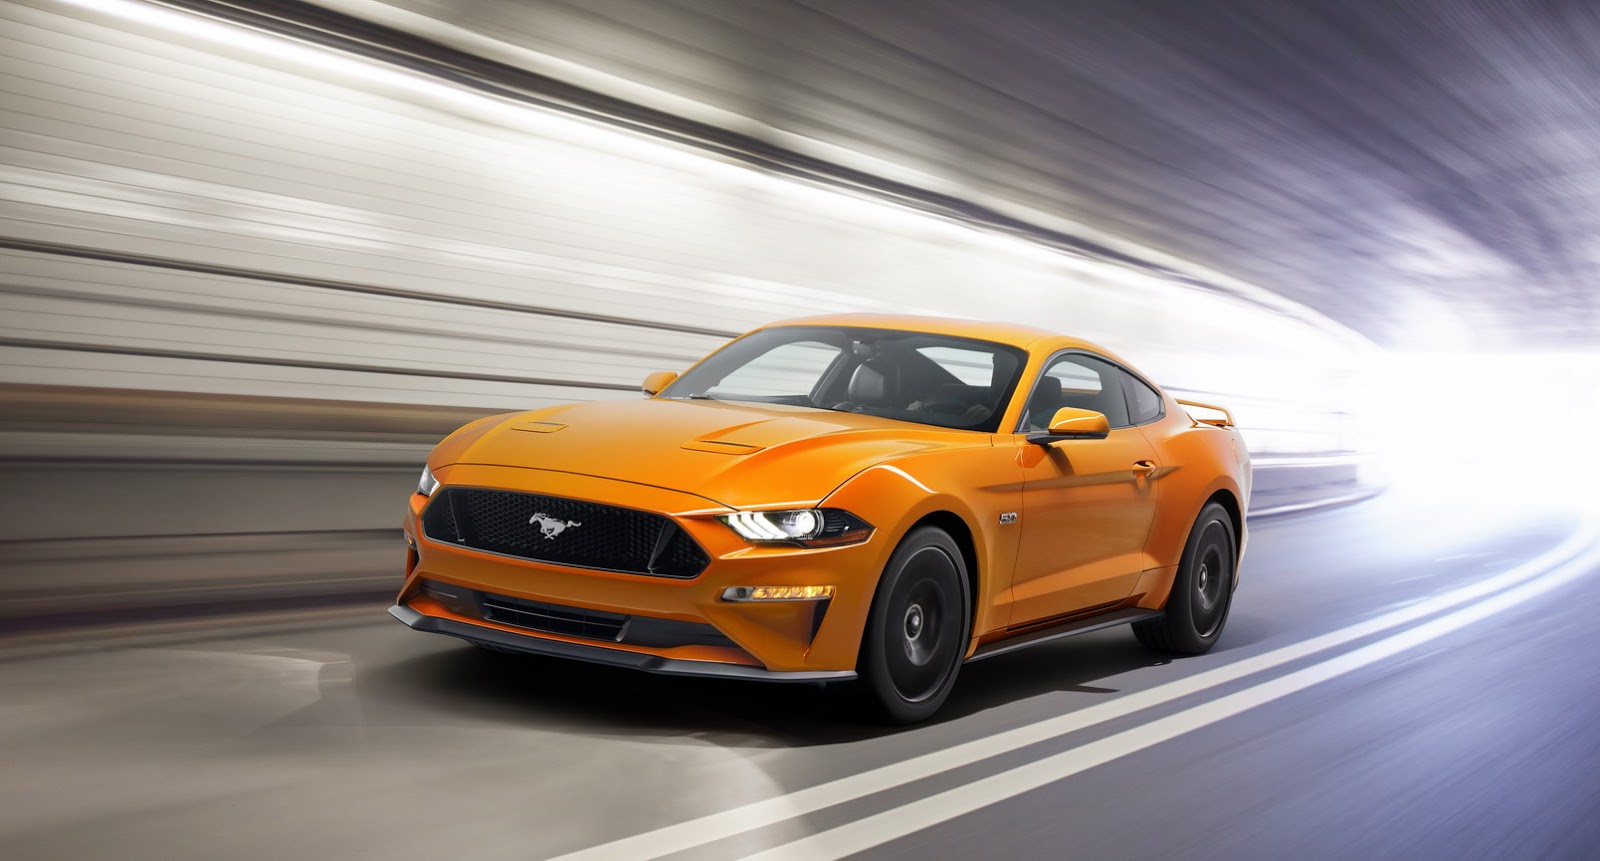 2018-Ford-Mustang-Performance-Package-Level-2-66.jpg